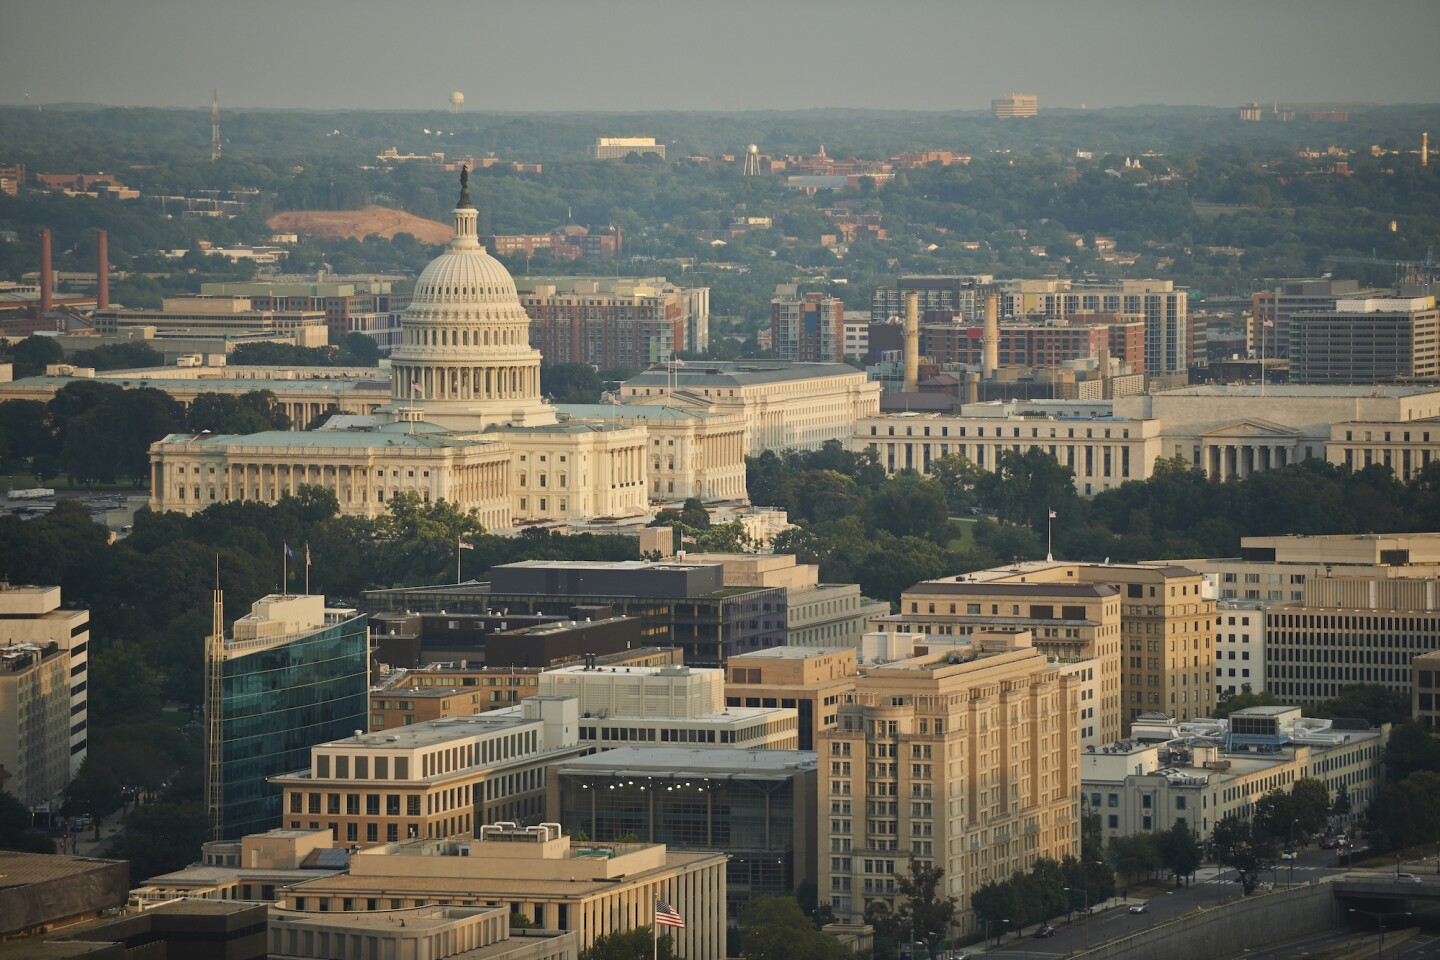 USA, Washington, D.C., Aerial photograph of the United States Capitol and the Federal Triangle